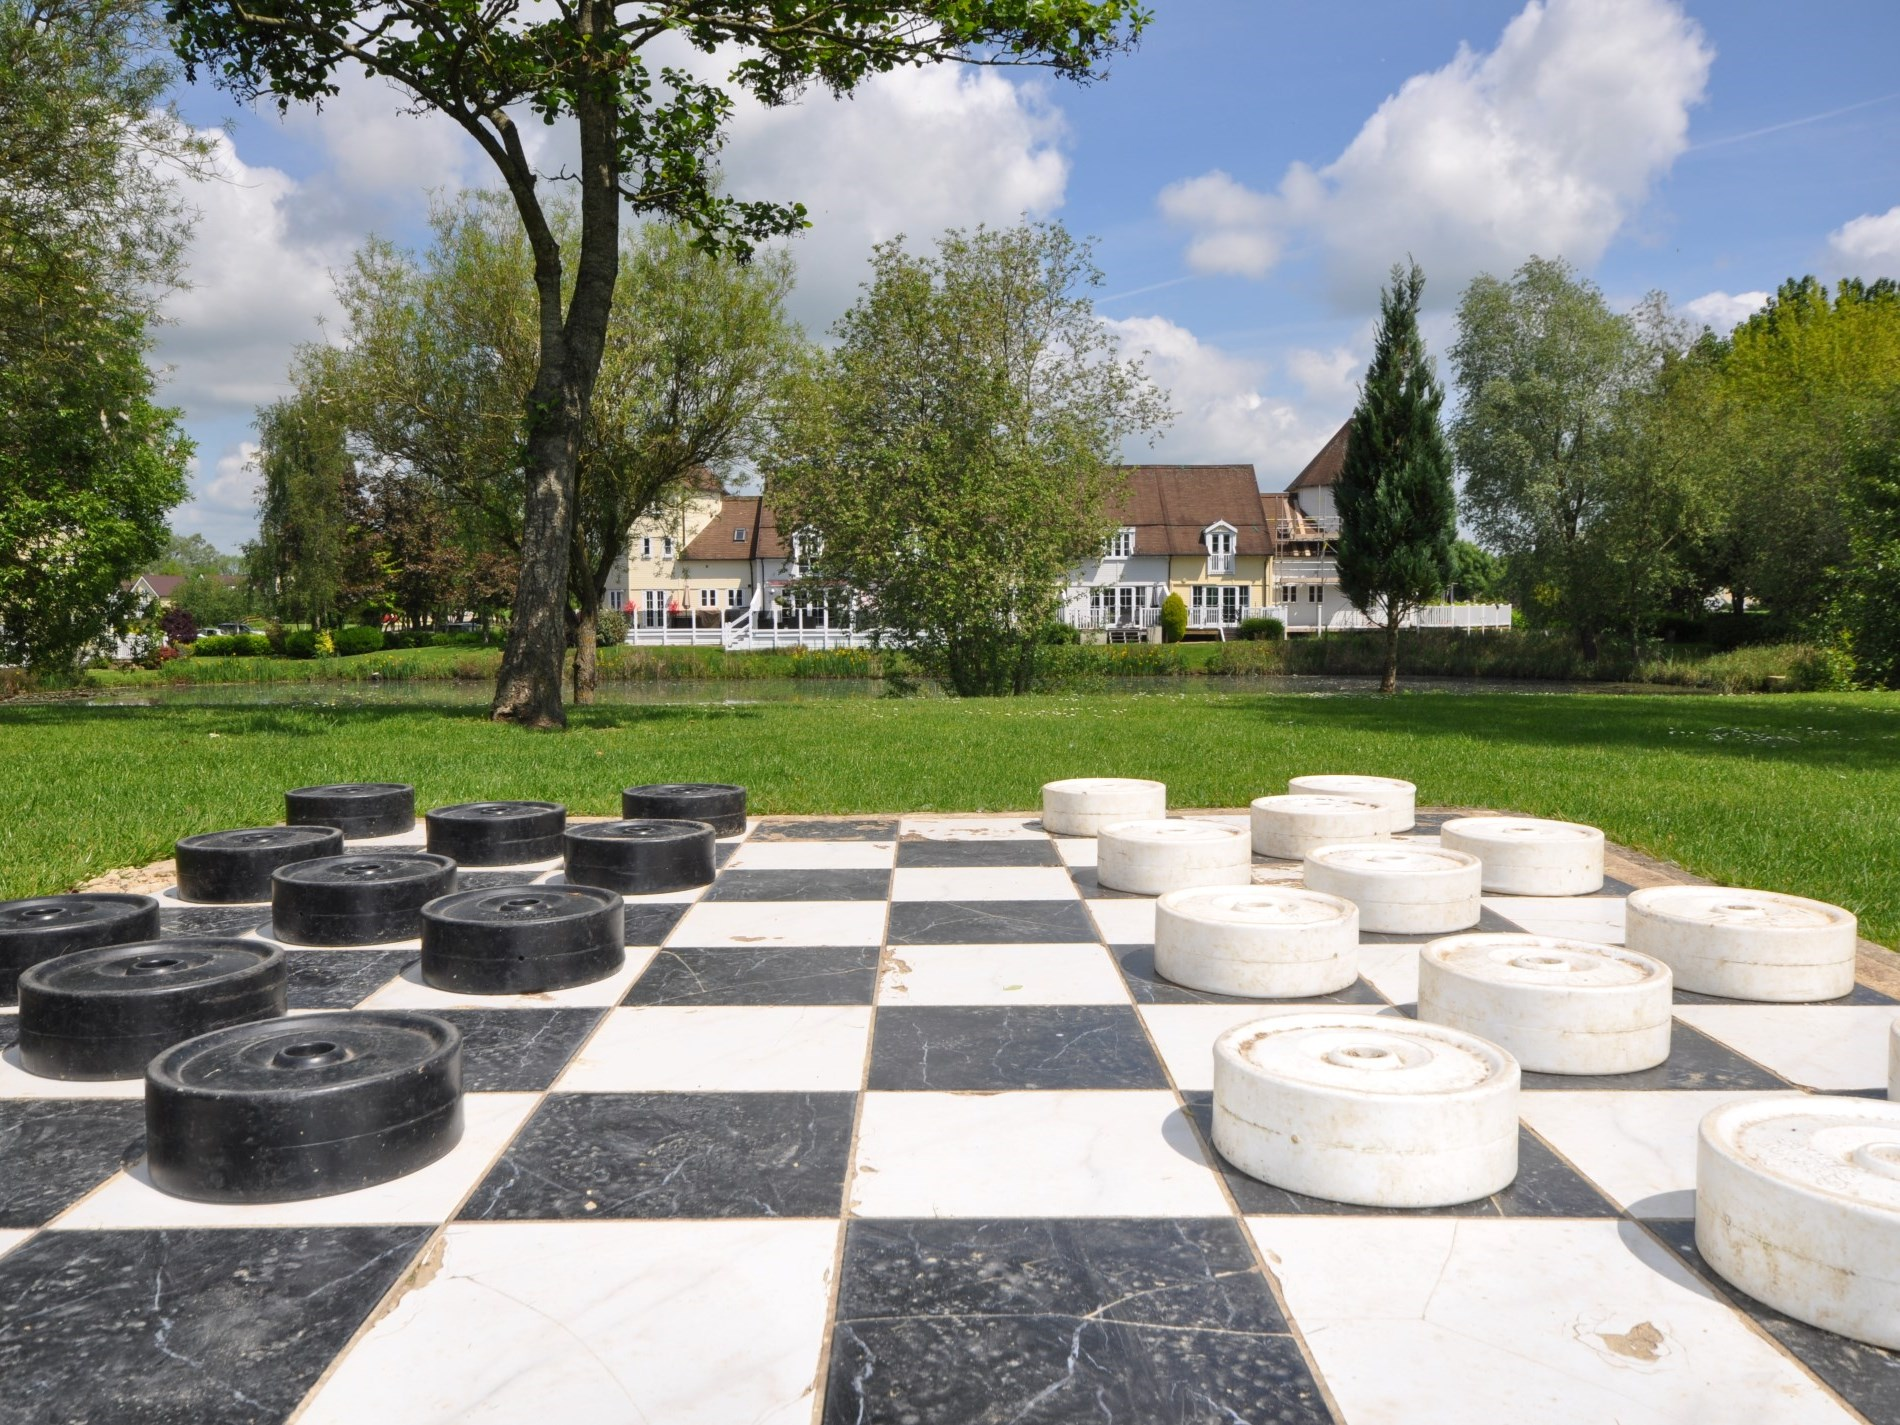 Try your luck with the giant draughts